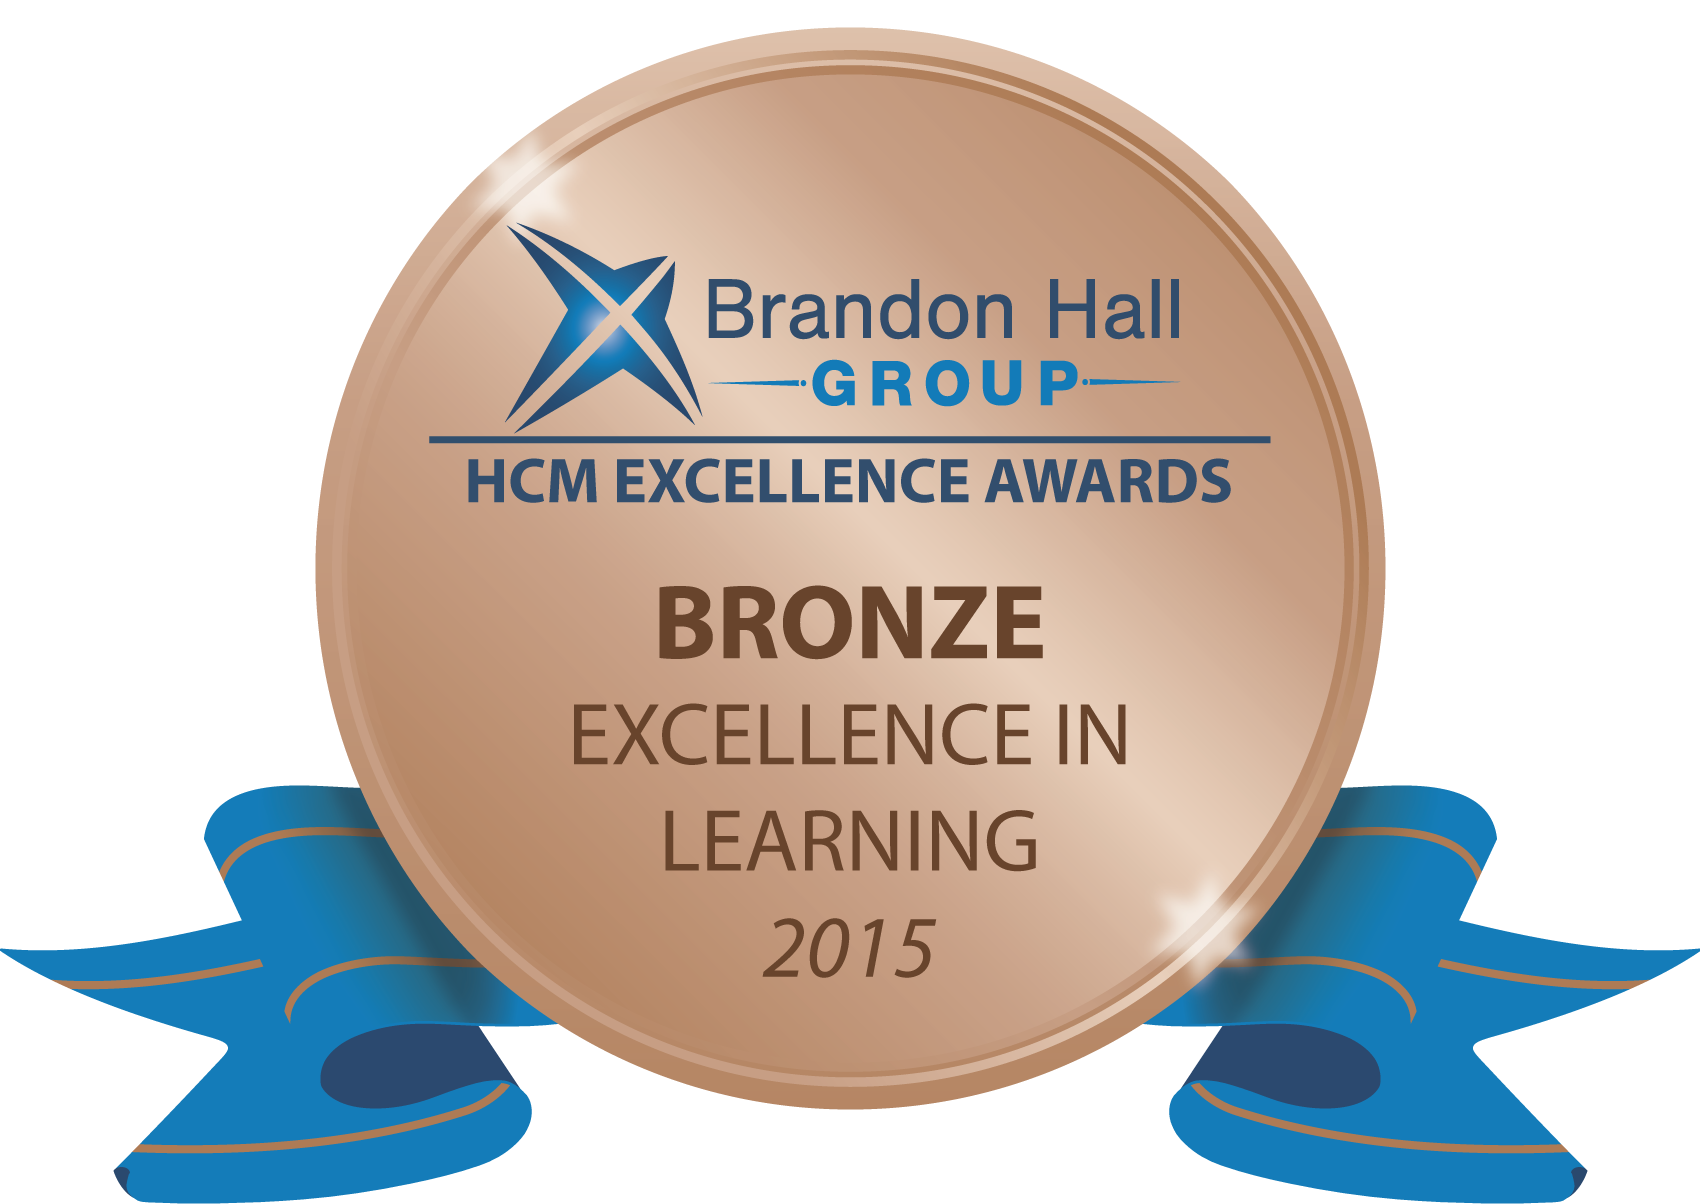 Norton Healthcare - Best Advance in Learning Technology Implementation